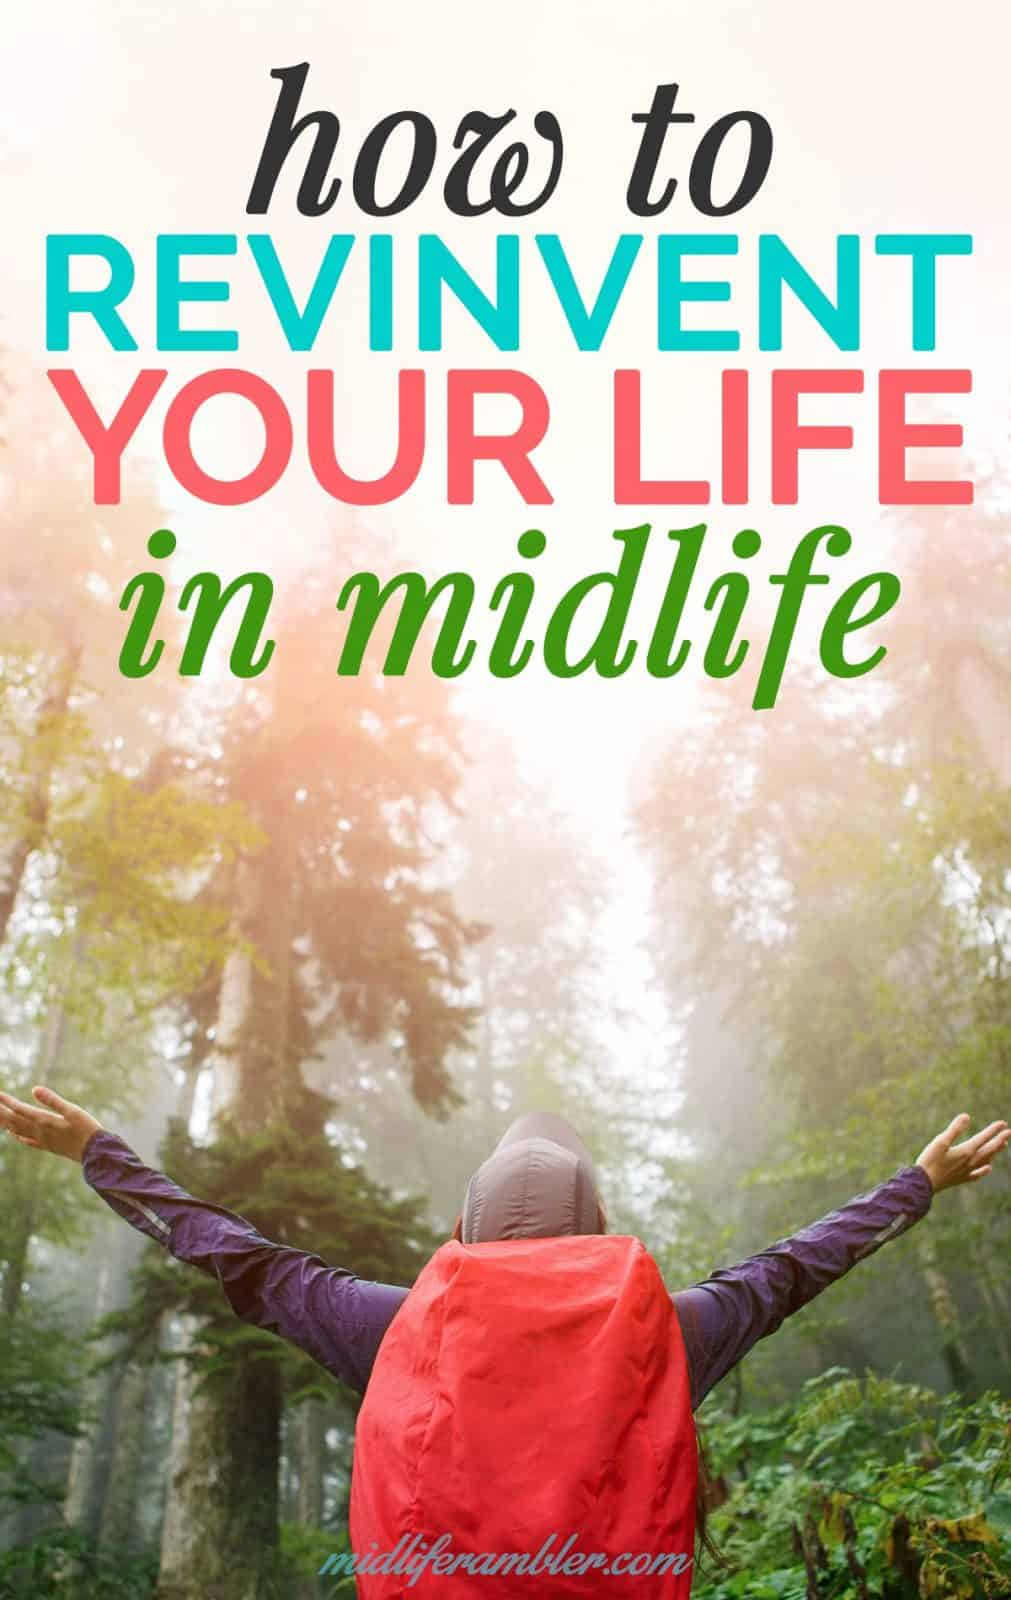 Five Tips to Reinvent Your Life in Midlife 14